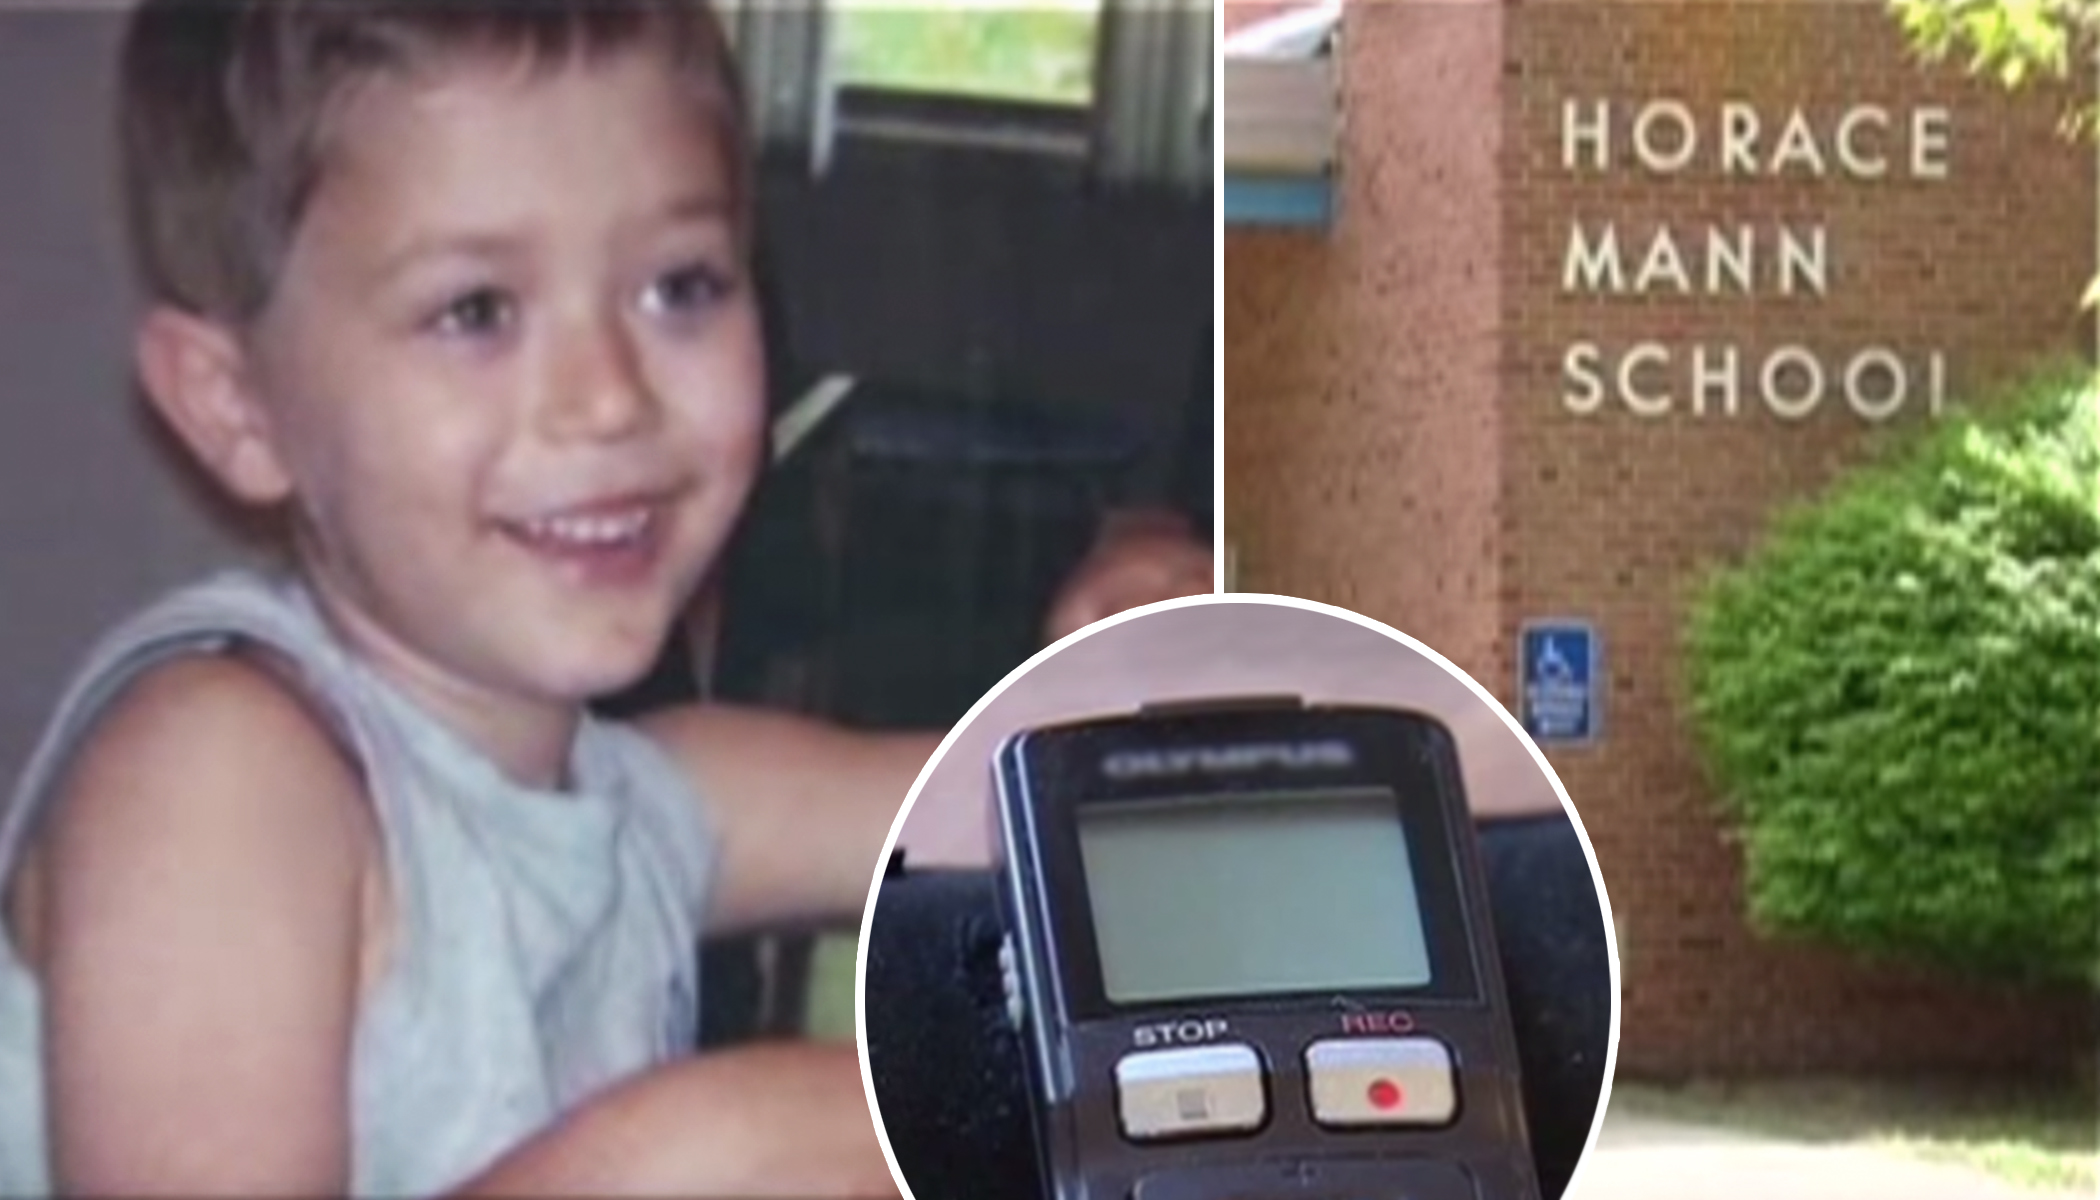 Dad Hides a Recorder in Autistic Son's Jacket, Tape Reveals Teachers Abused Him